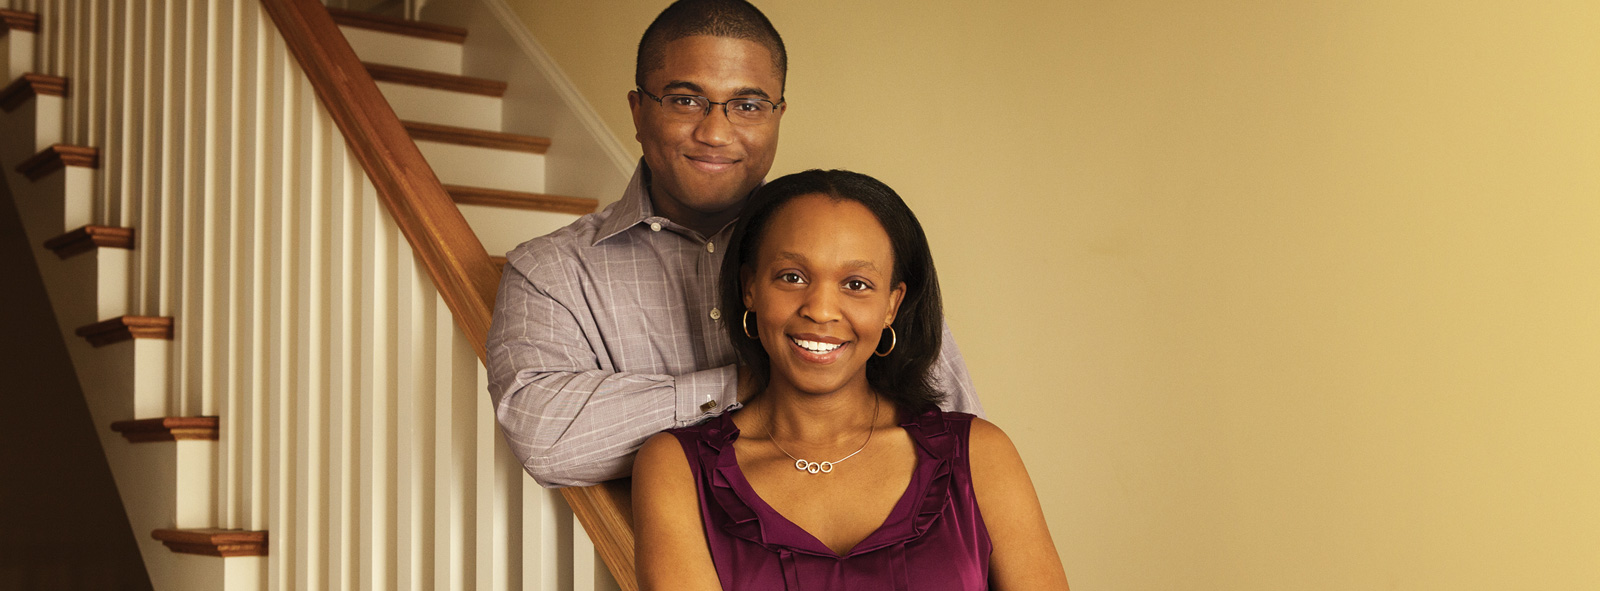 Image of First Republic Law Firms / Attorneys client(s) Jason and Melanie Goins